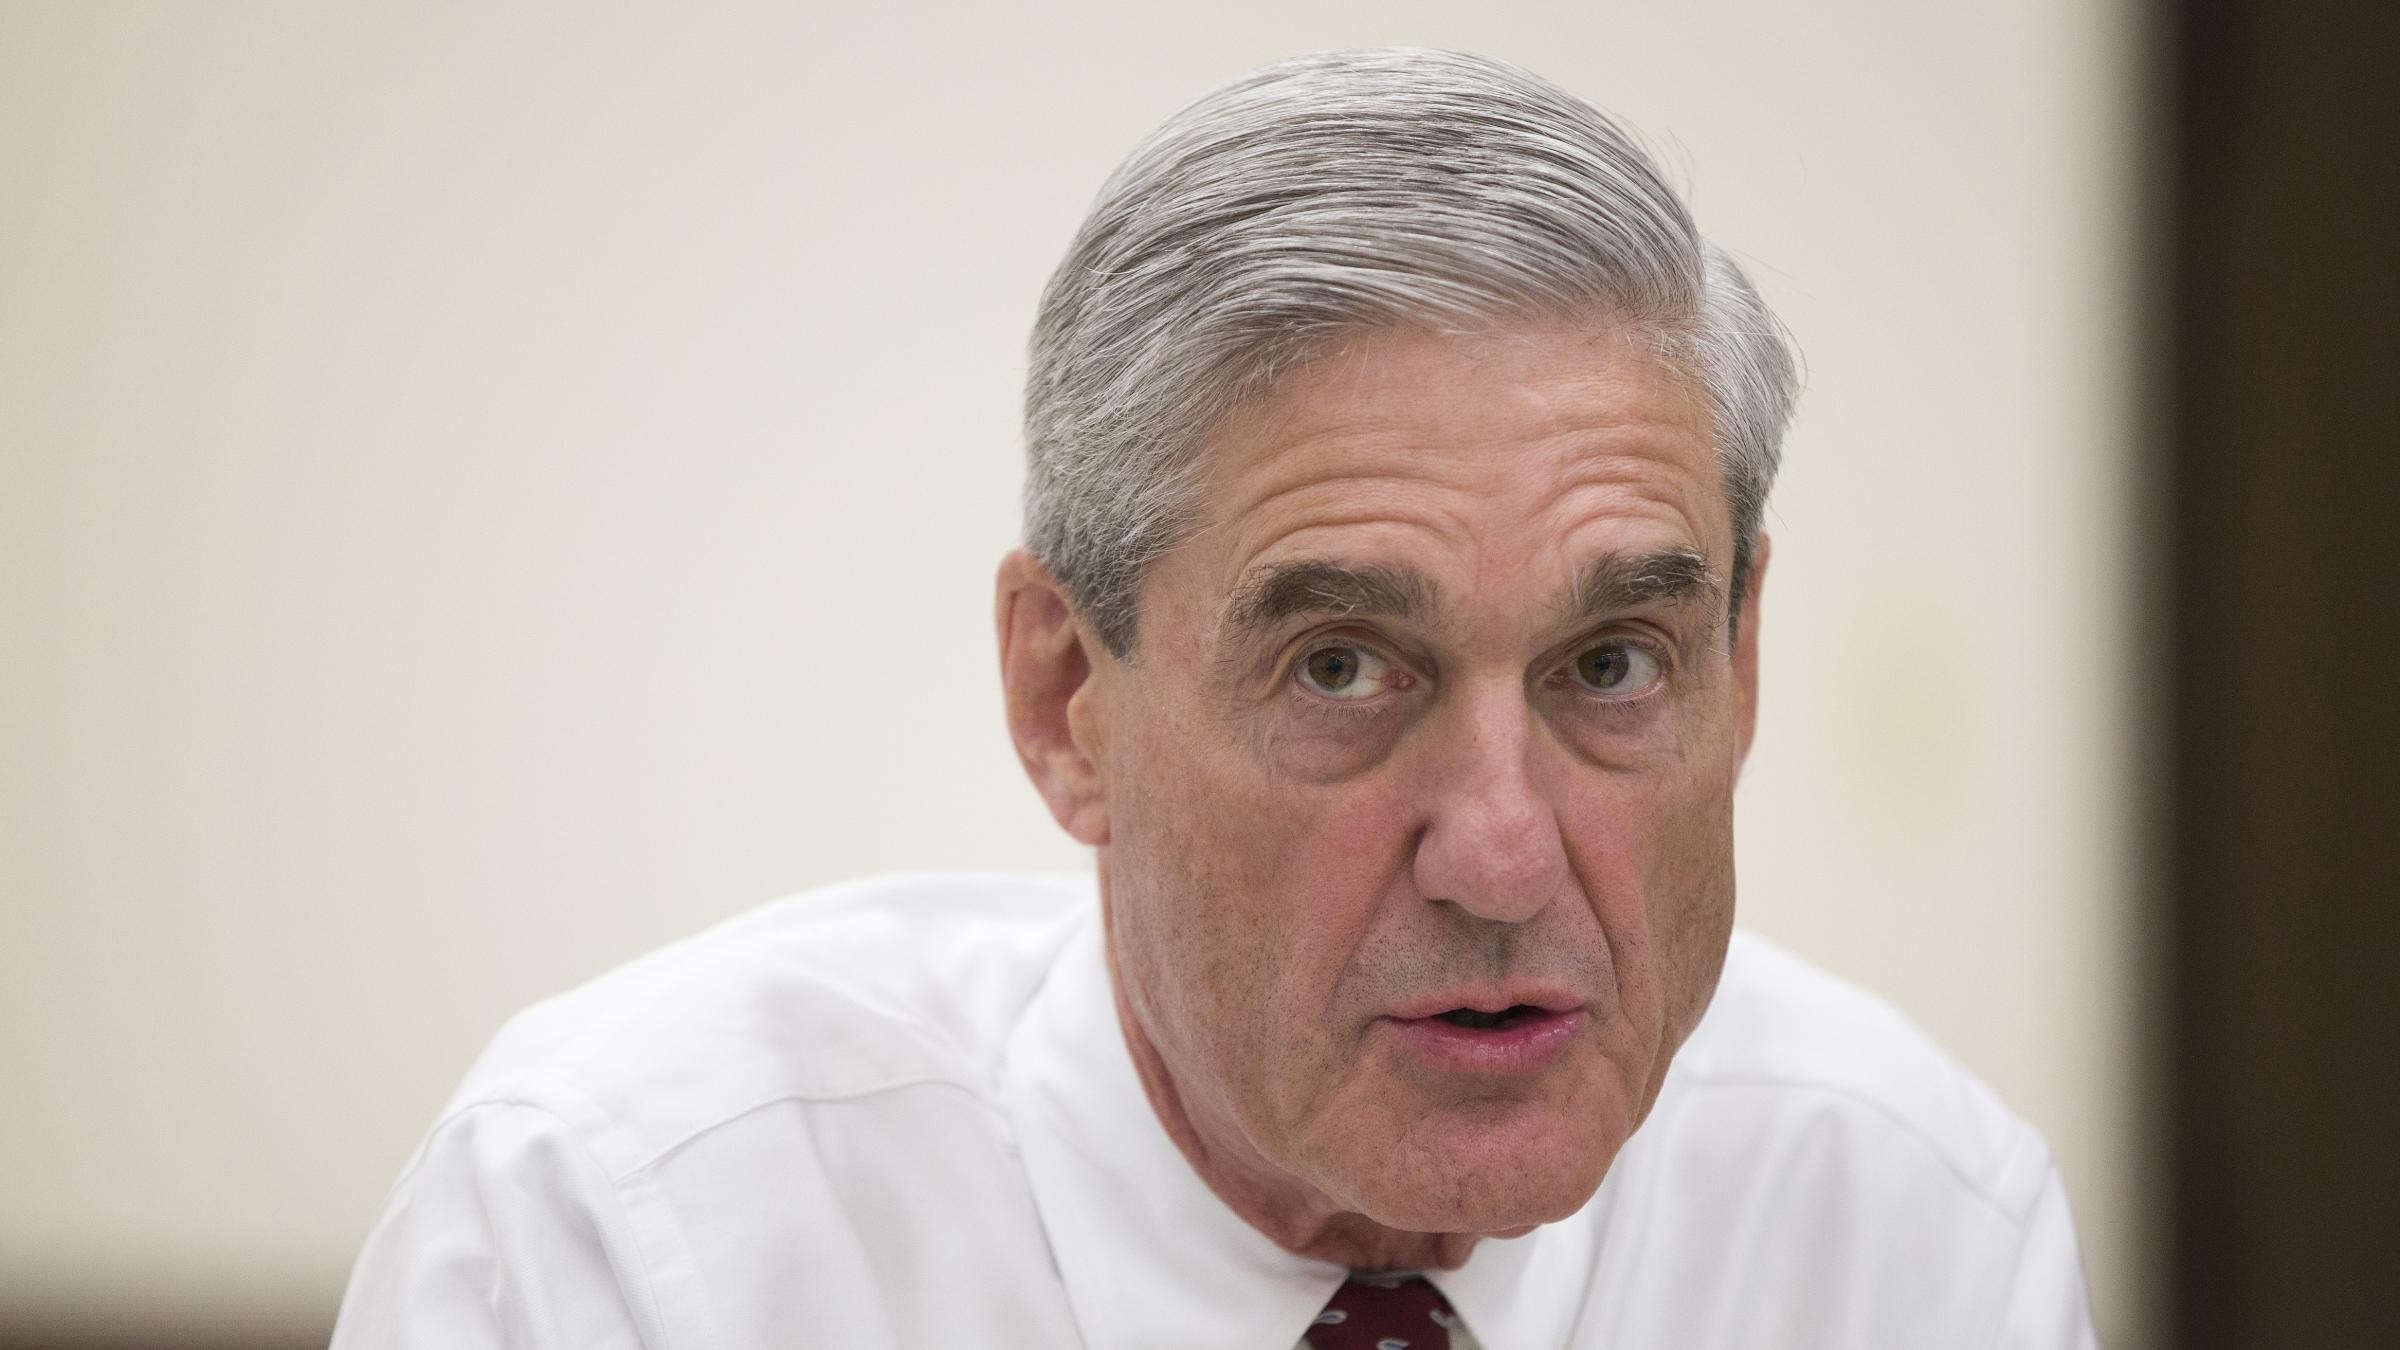 Rod Rosenstein: There's No Reason To Fire Special Counsel Mueller